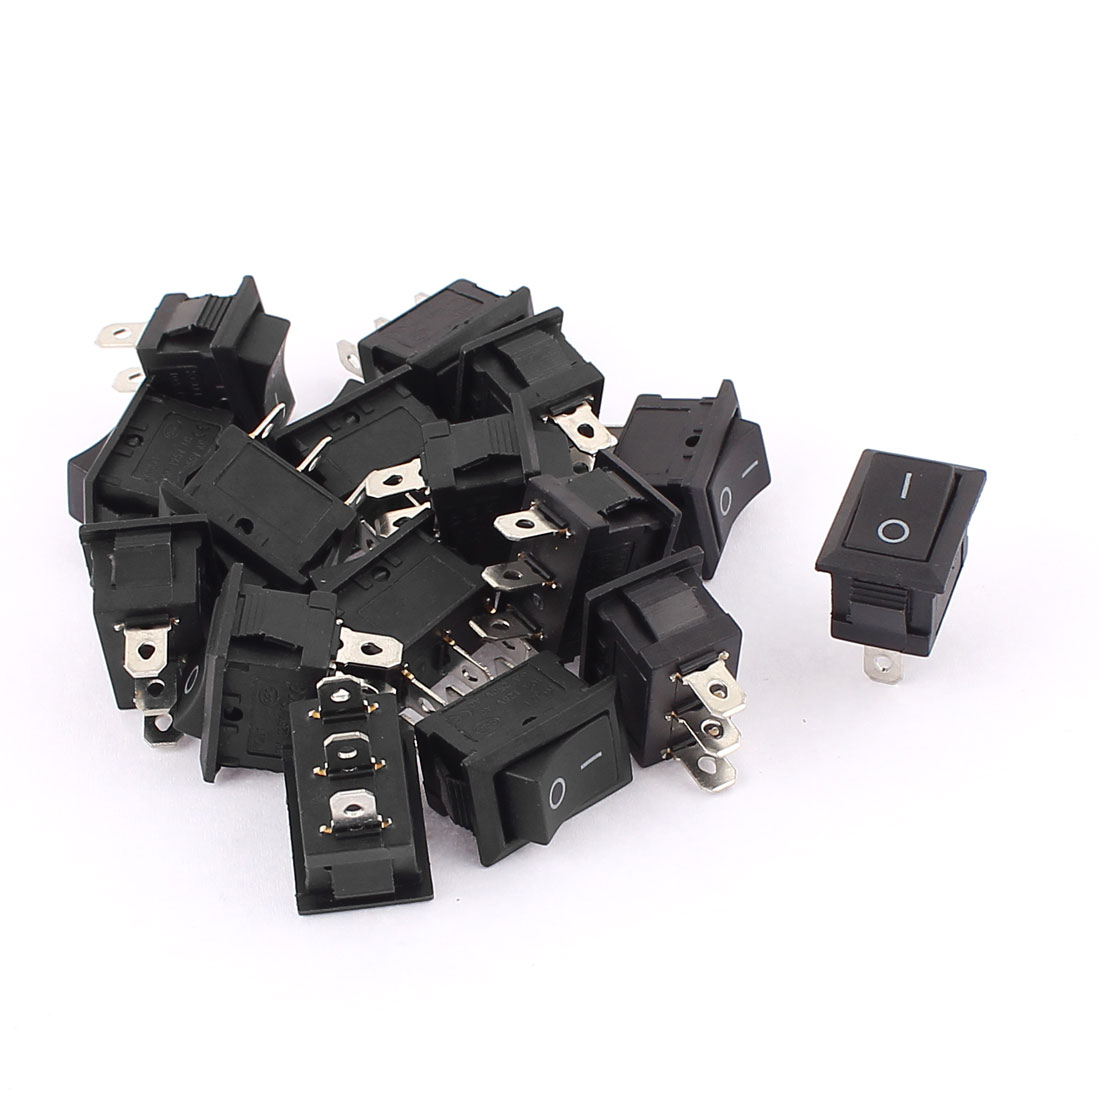 AC 250V 6A 125V 10A SPDT 3 Terminal 2 Position On/ Off Snap in Mount Mini Rocker Switches 16Pcs